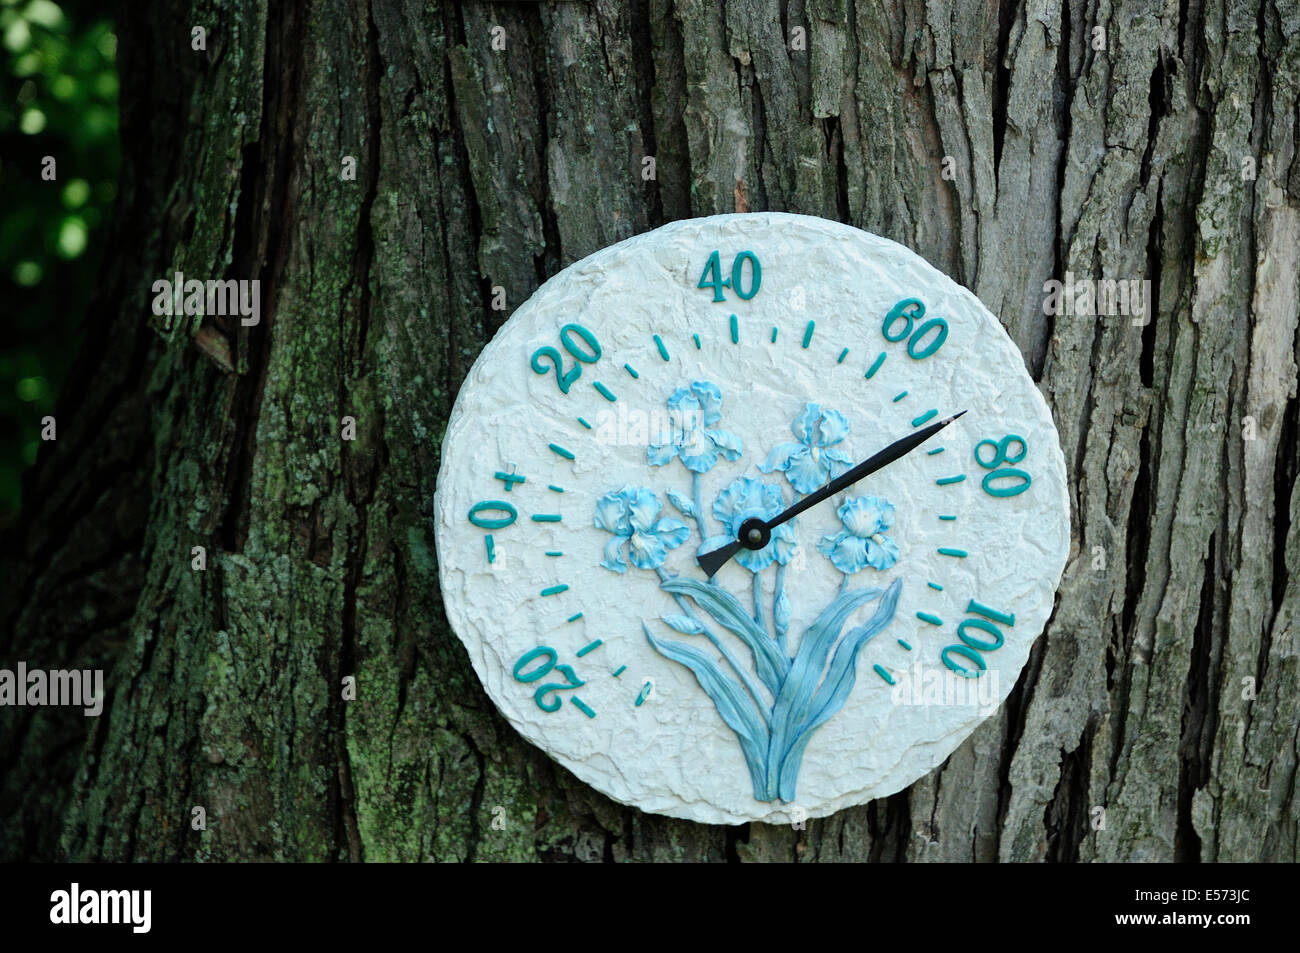 Outdoor garden thermometer on tree. - Stock Image